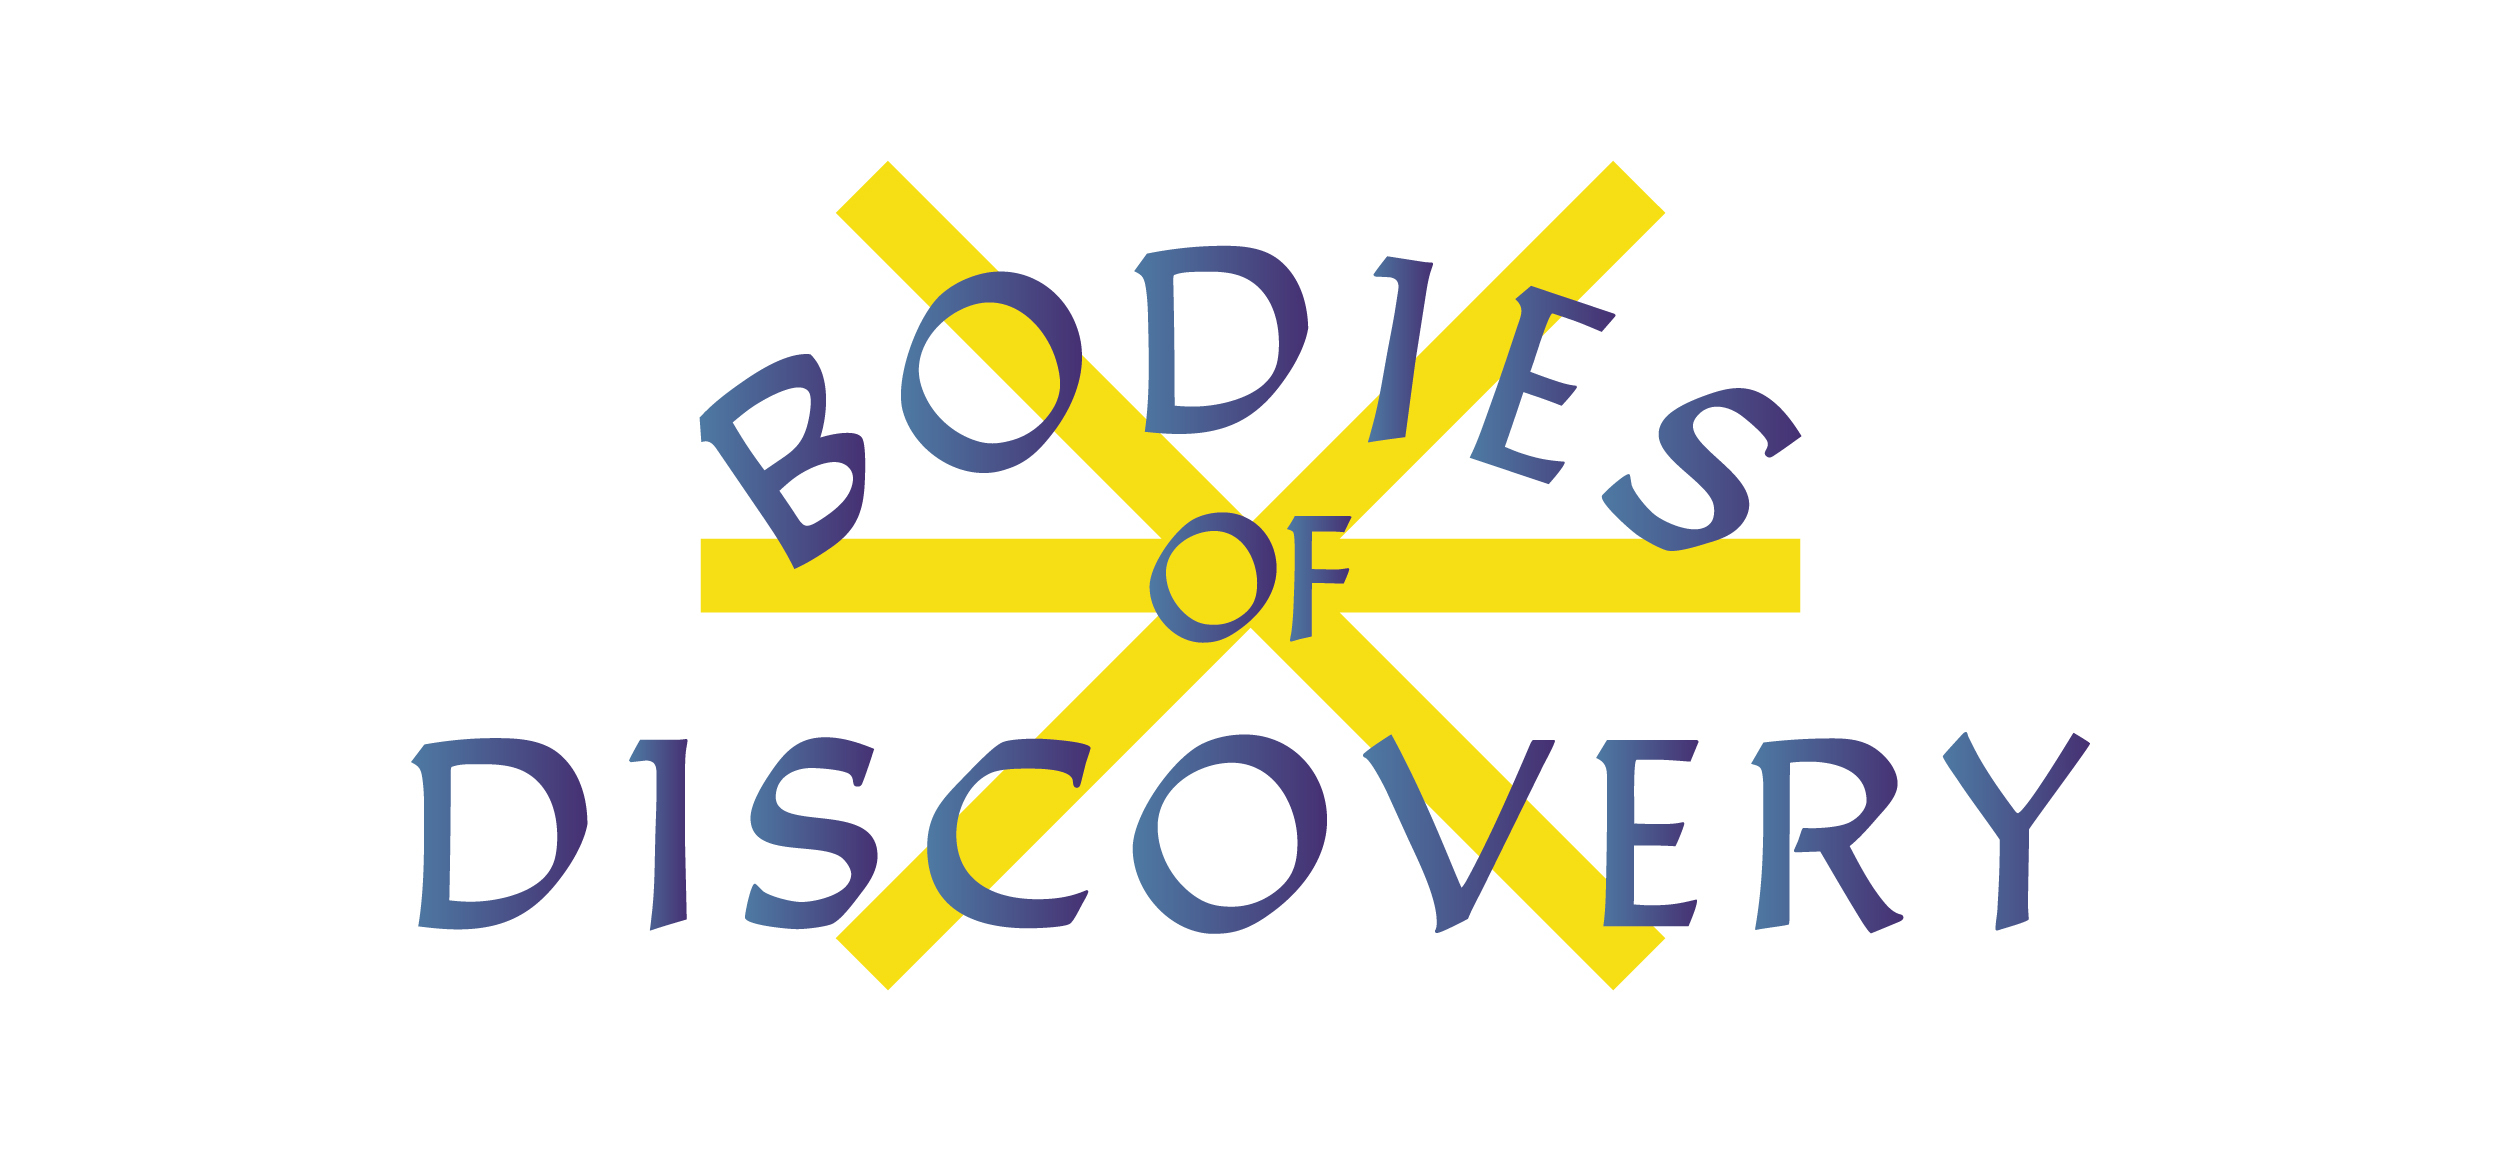 """Before three intersecting yellow lines, the words """"Bodies of Discovery"""" are typed in bold, blue text."""